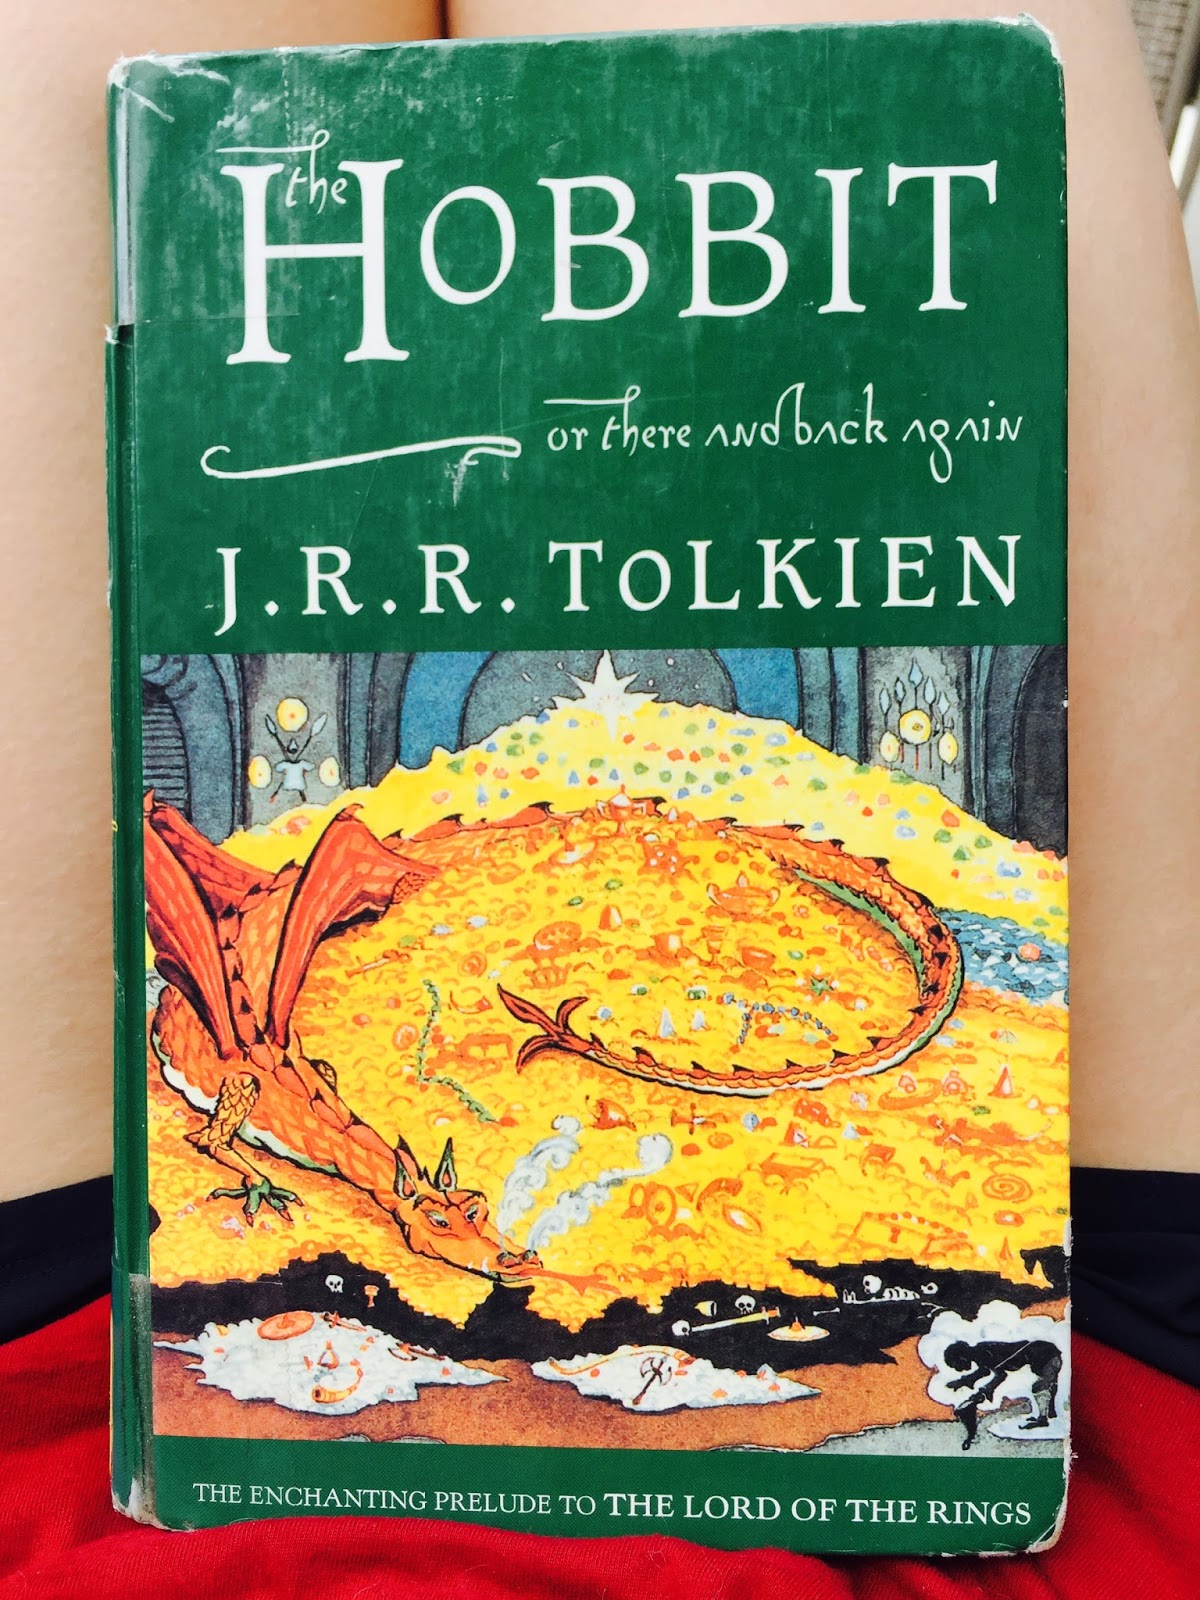 The Hobbit | J.R.R. Tolkien